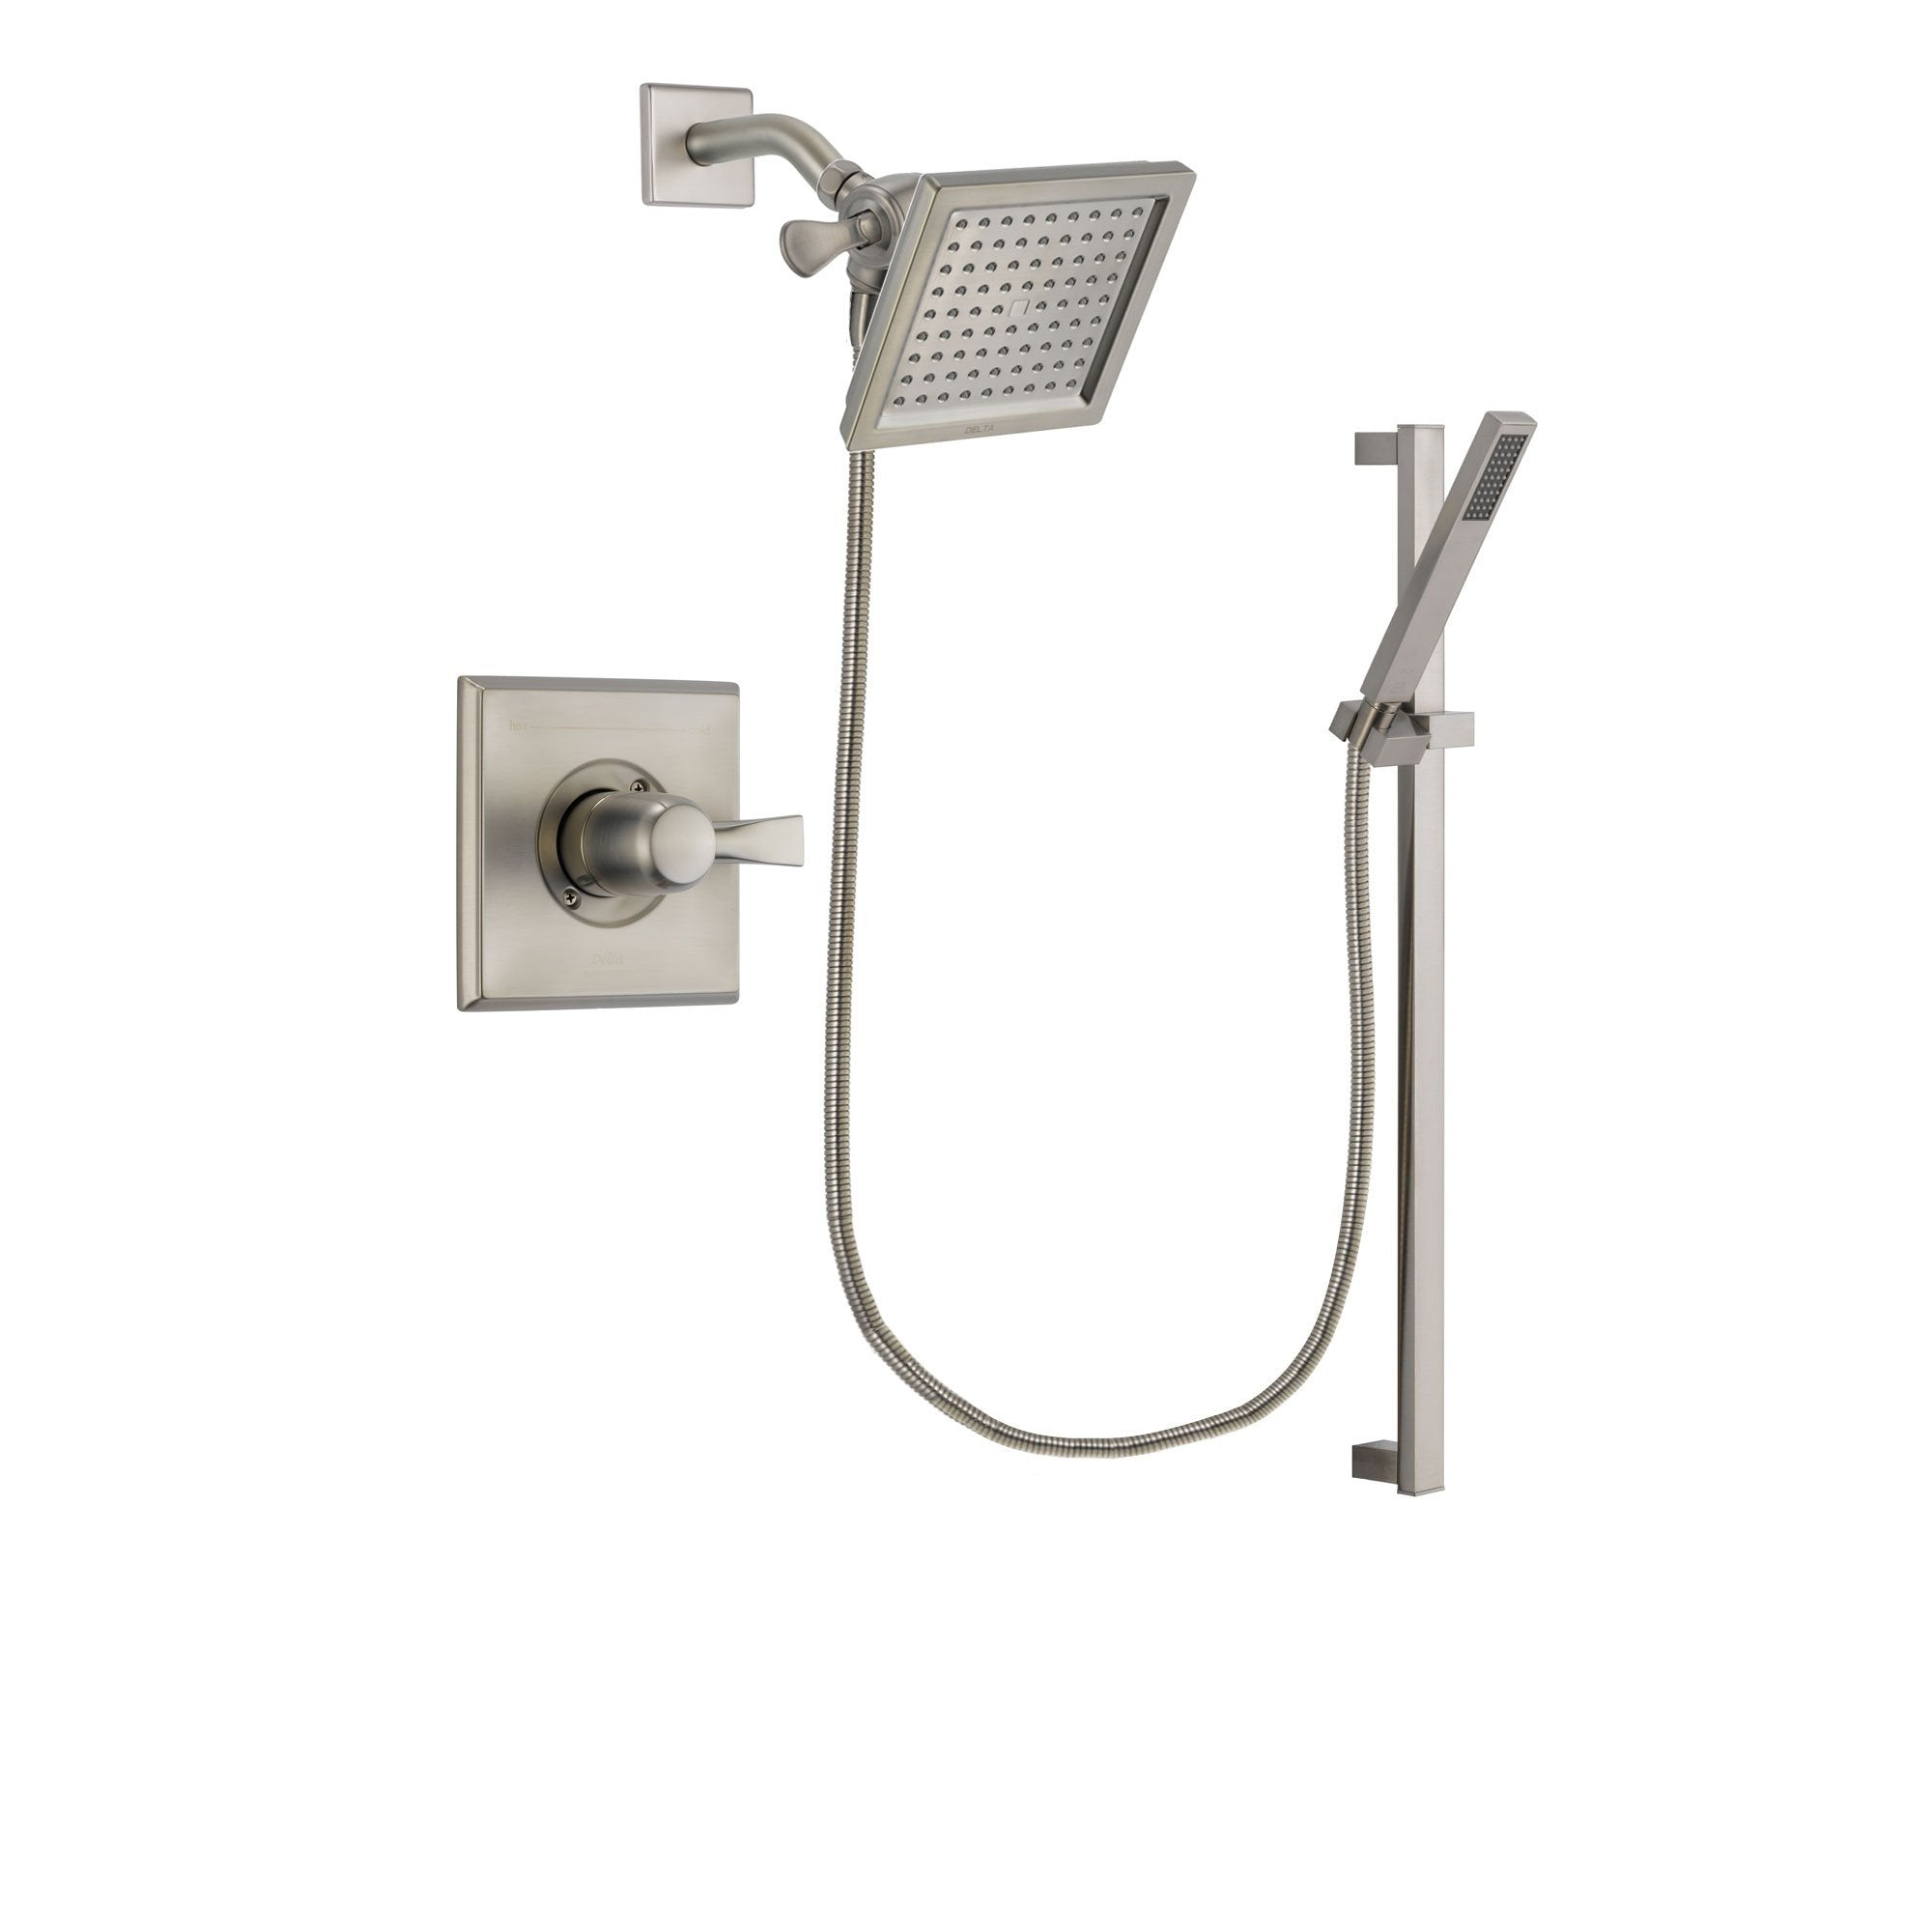 Delta Dryden Stainless Steel Finish Shower Faucet System W Hand Spray Dsp2352v